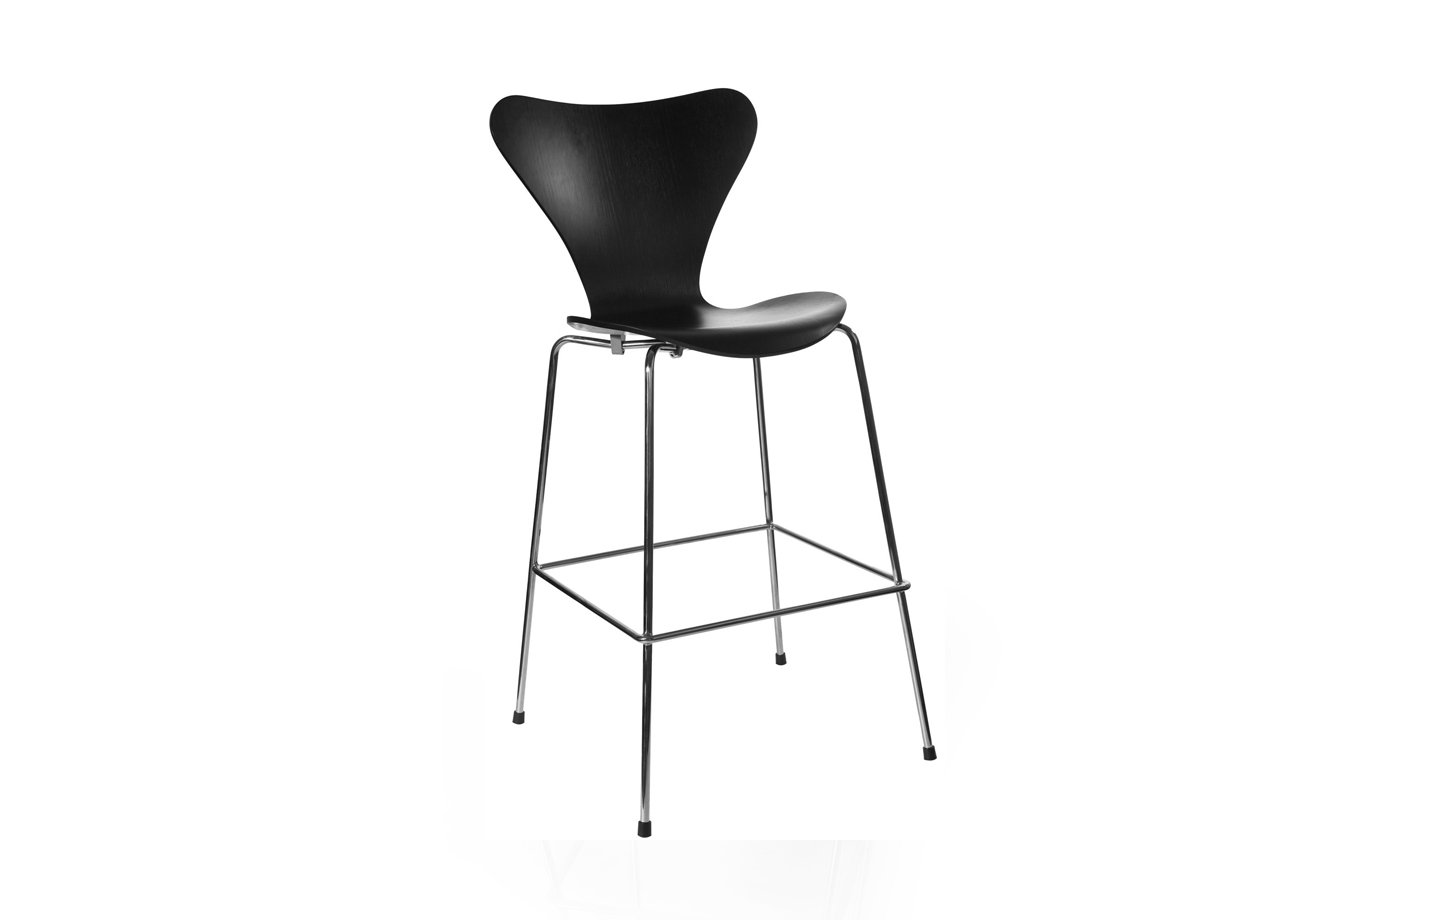 Series 7 bar stool – Black